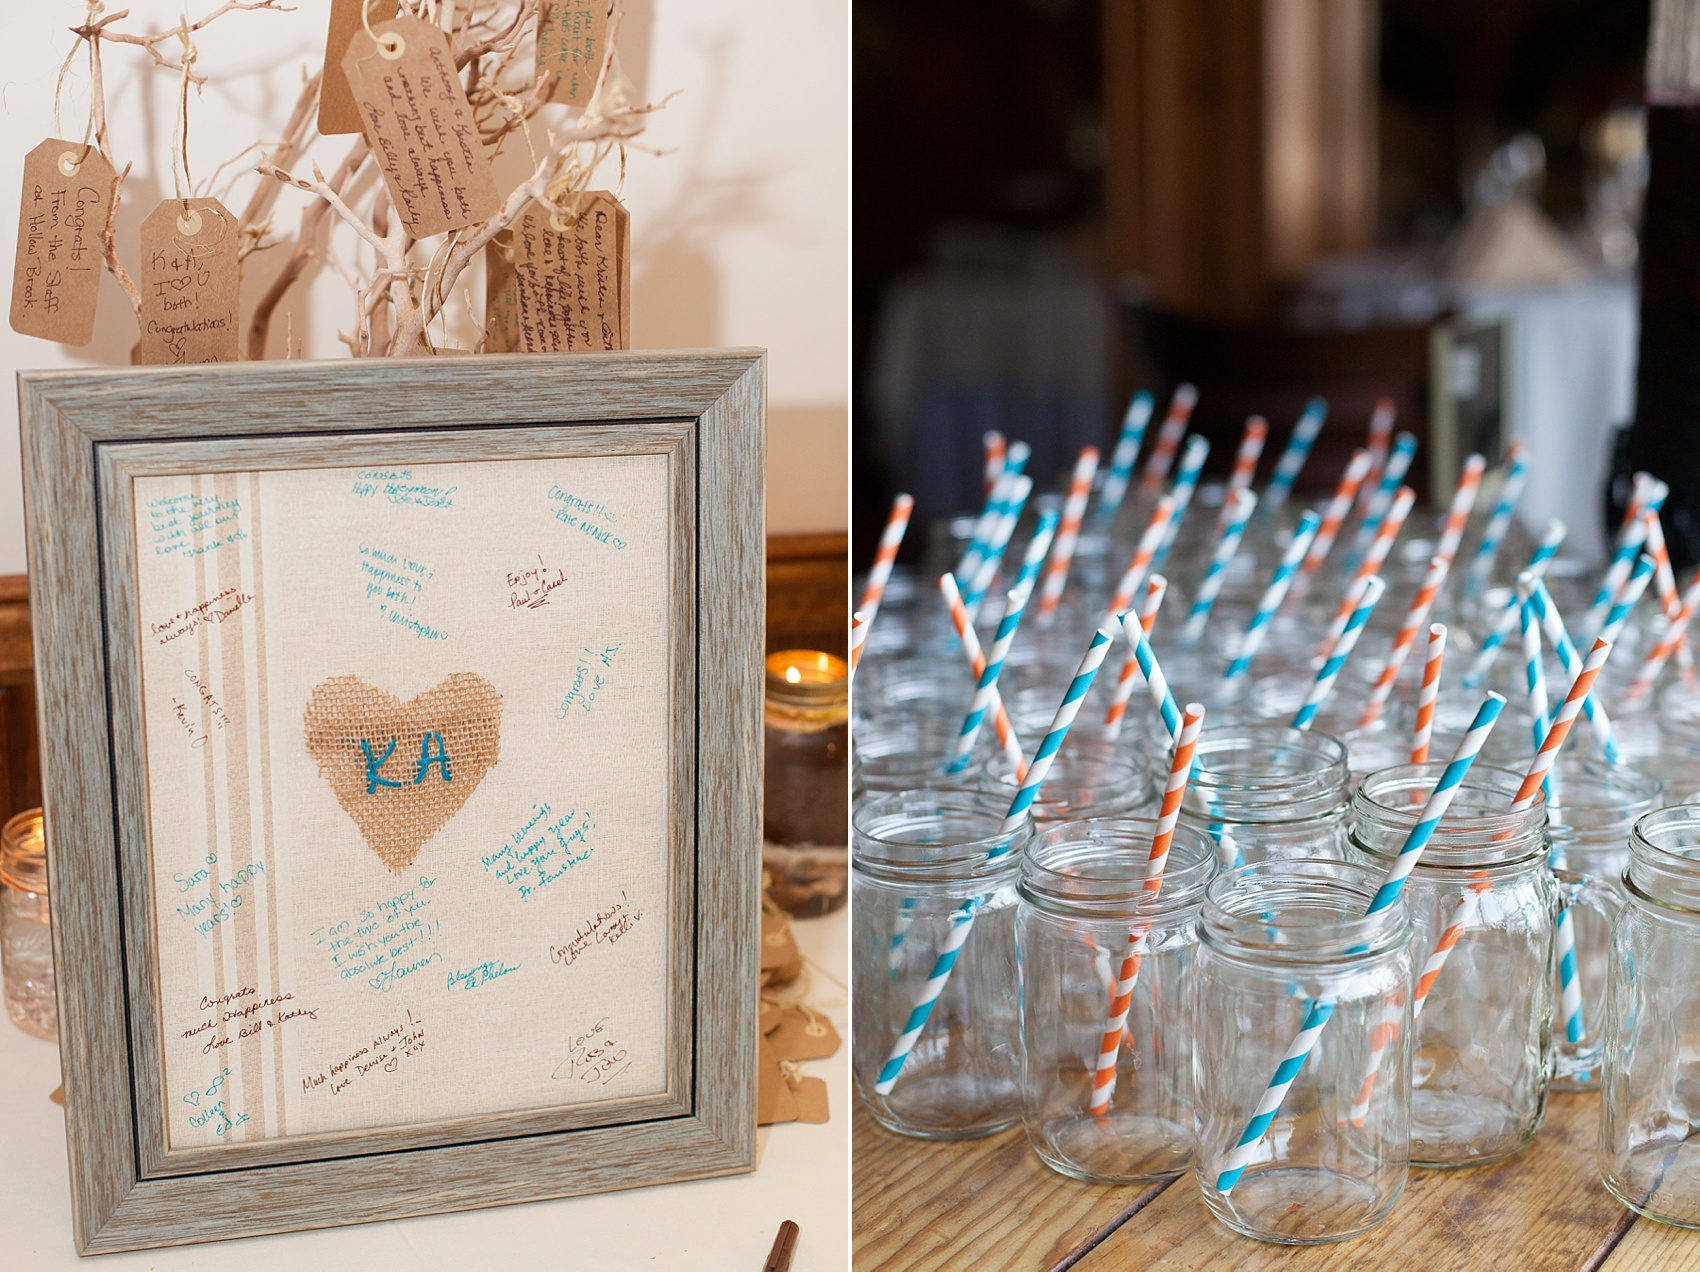 Guest book frame and mason jars with striped paper straws for a Hollow Brook Golf Club wedding in NY. Photos by Mikkel Paige Photography.